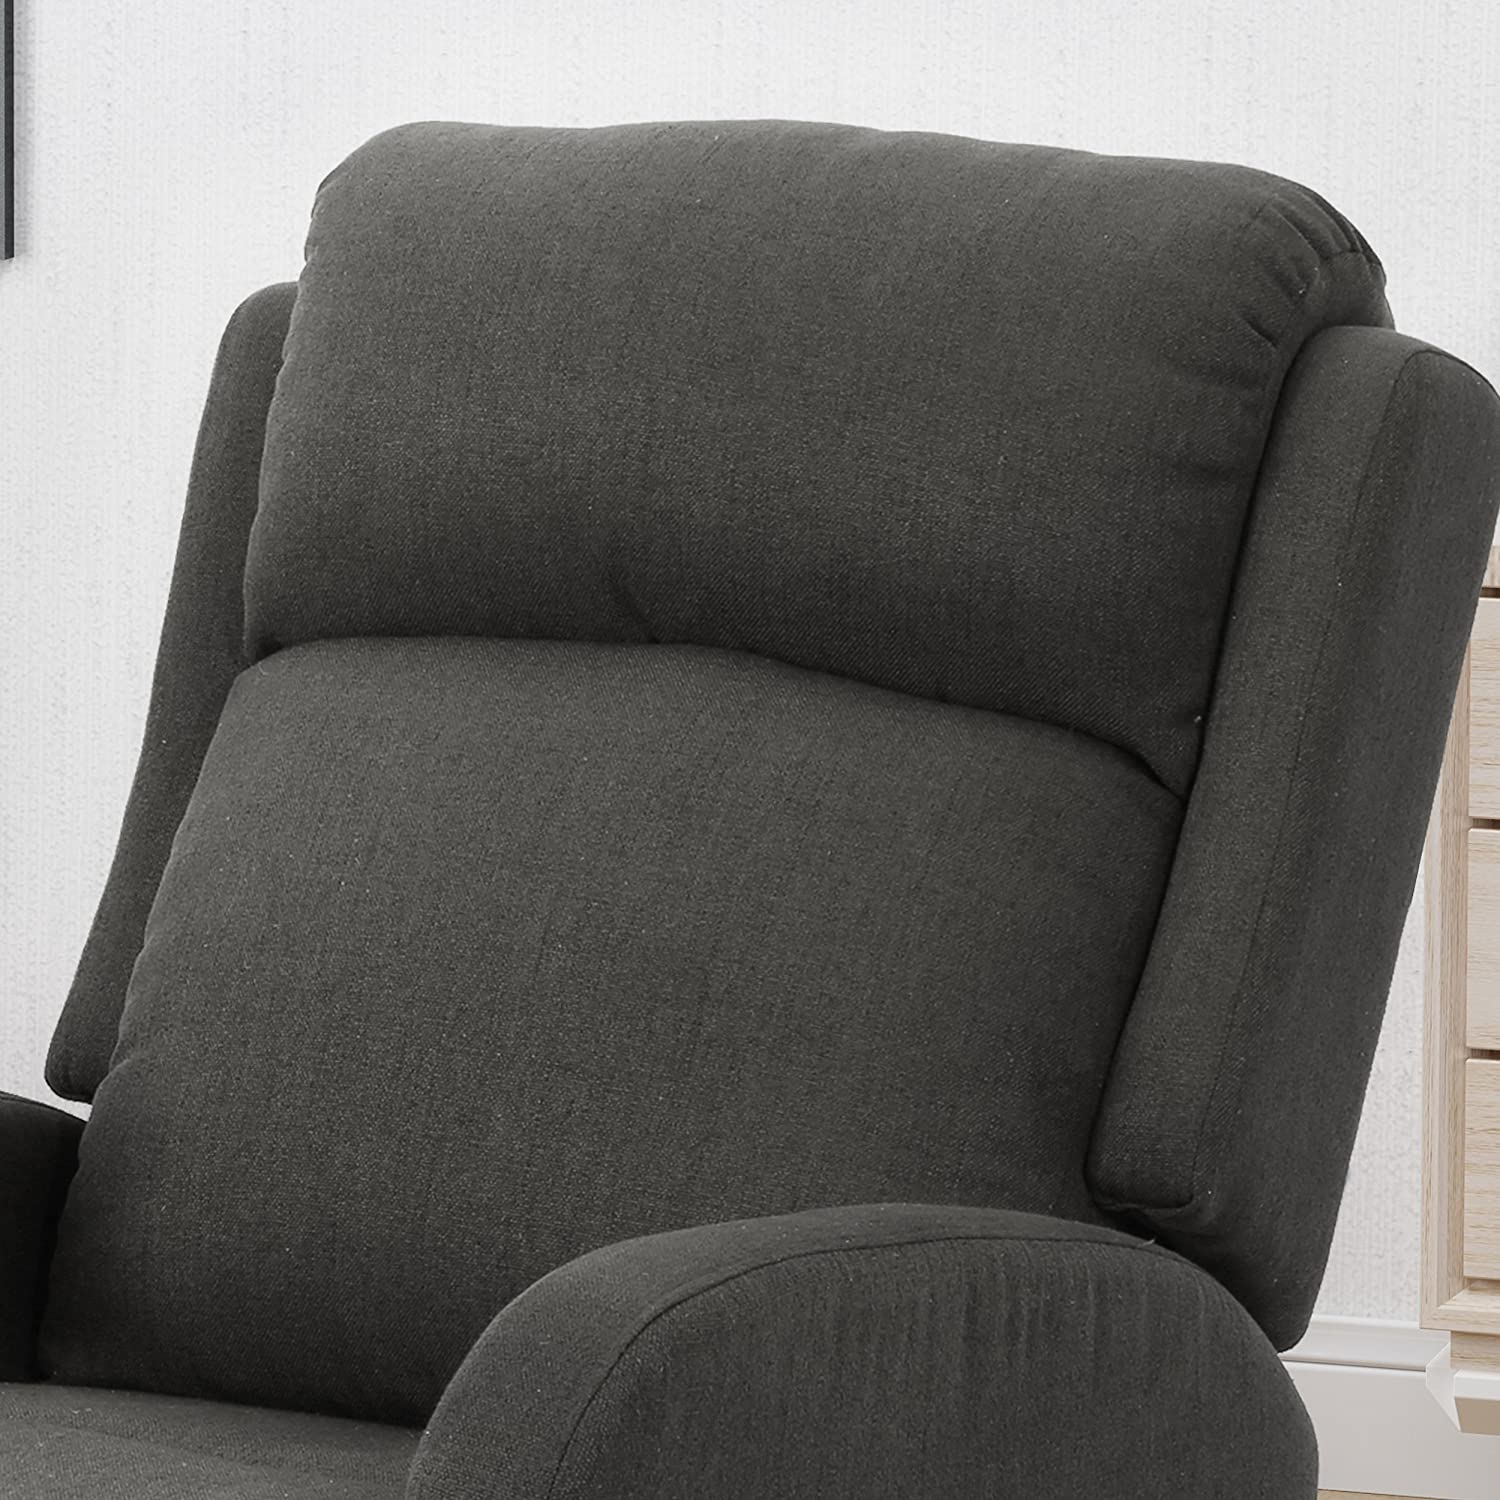 Amazon.com: Christopher Knight Home Avaa - Sillón reclinable ...